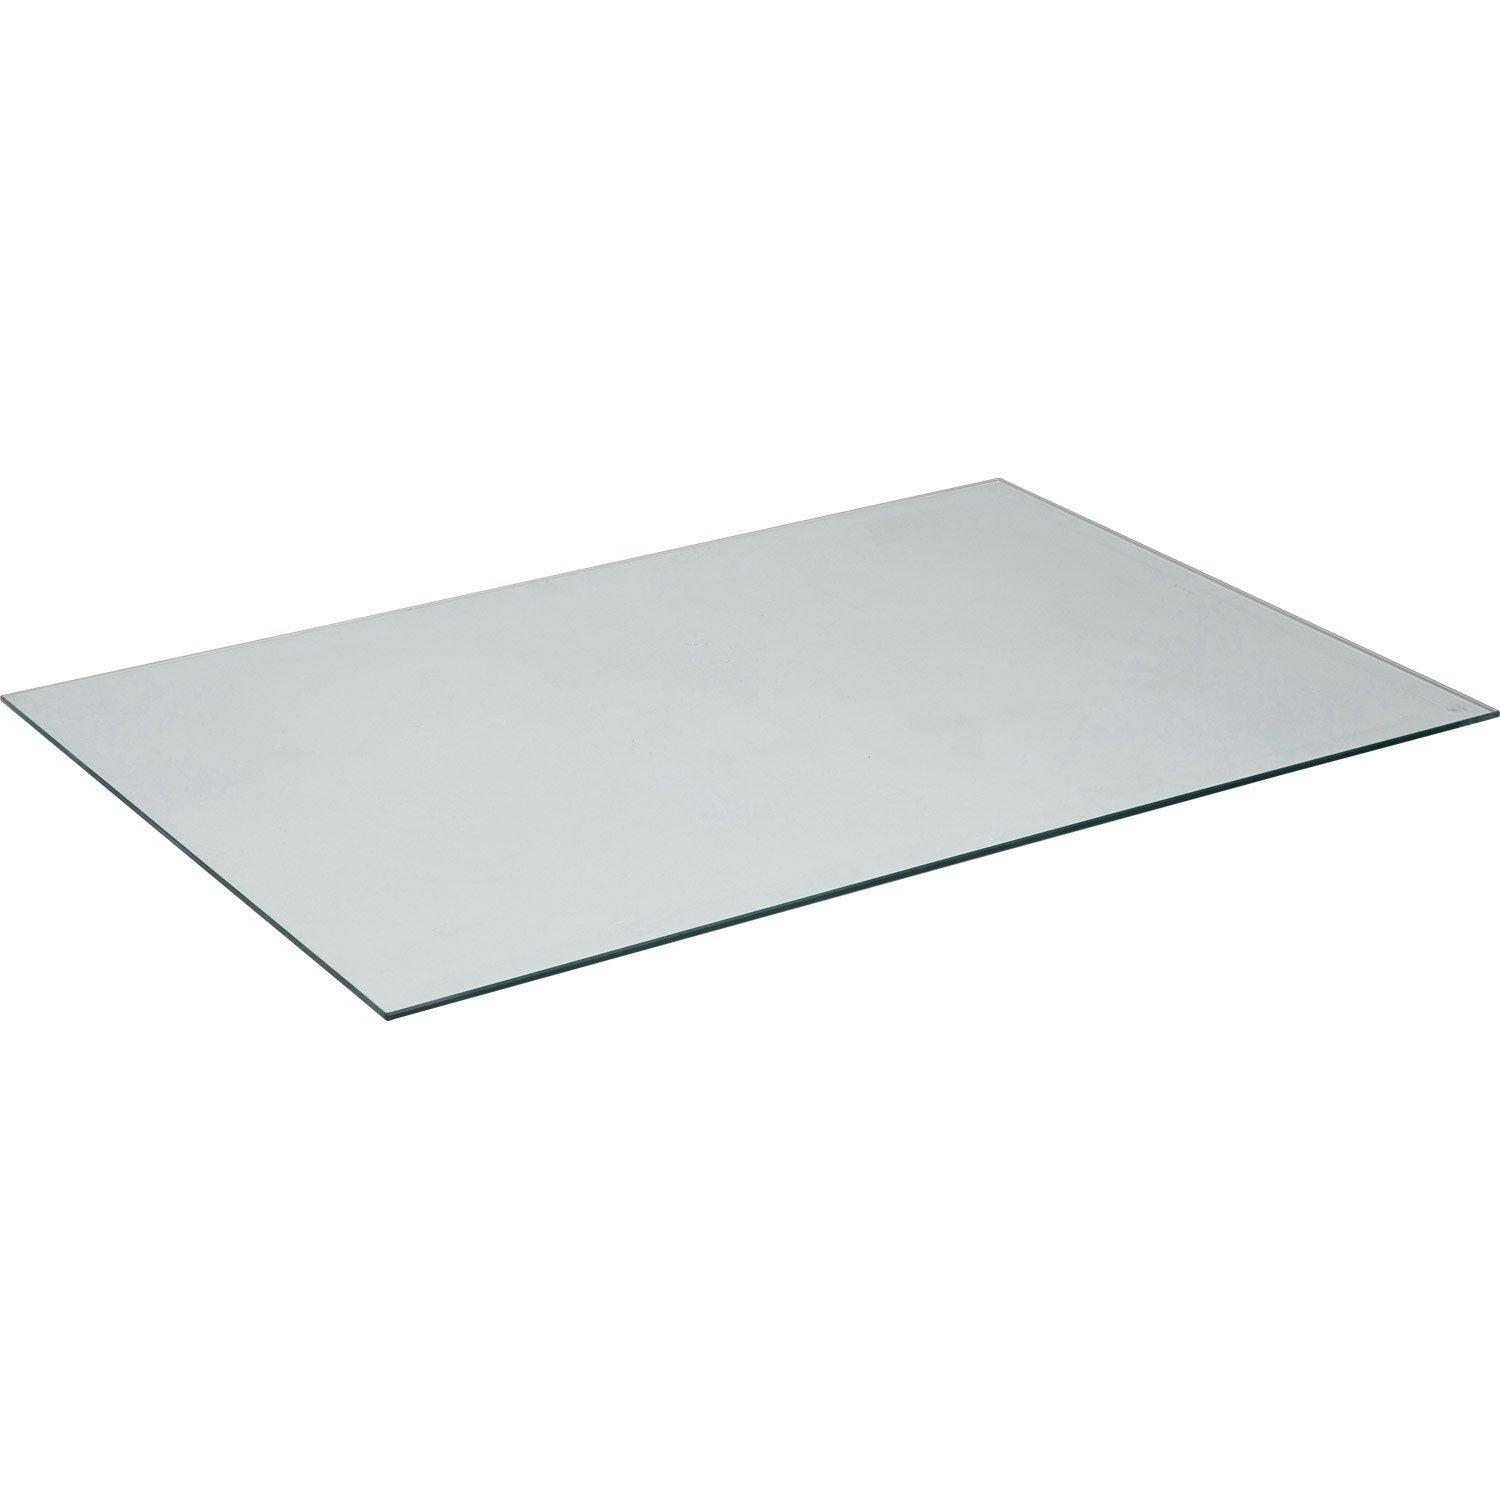 Plateau de table verre x cm x ep 8 mm leroy for Plateau en verre pour table basse